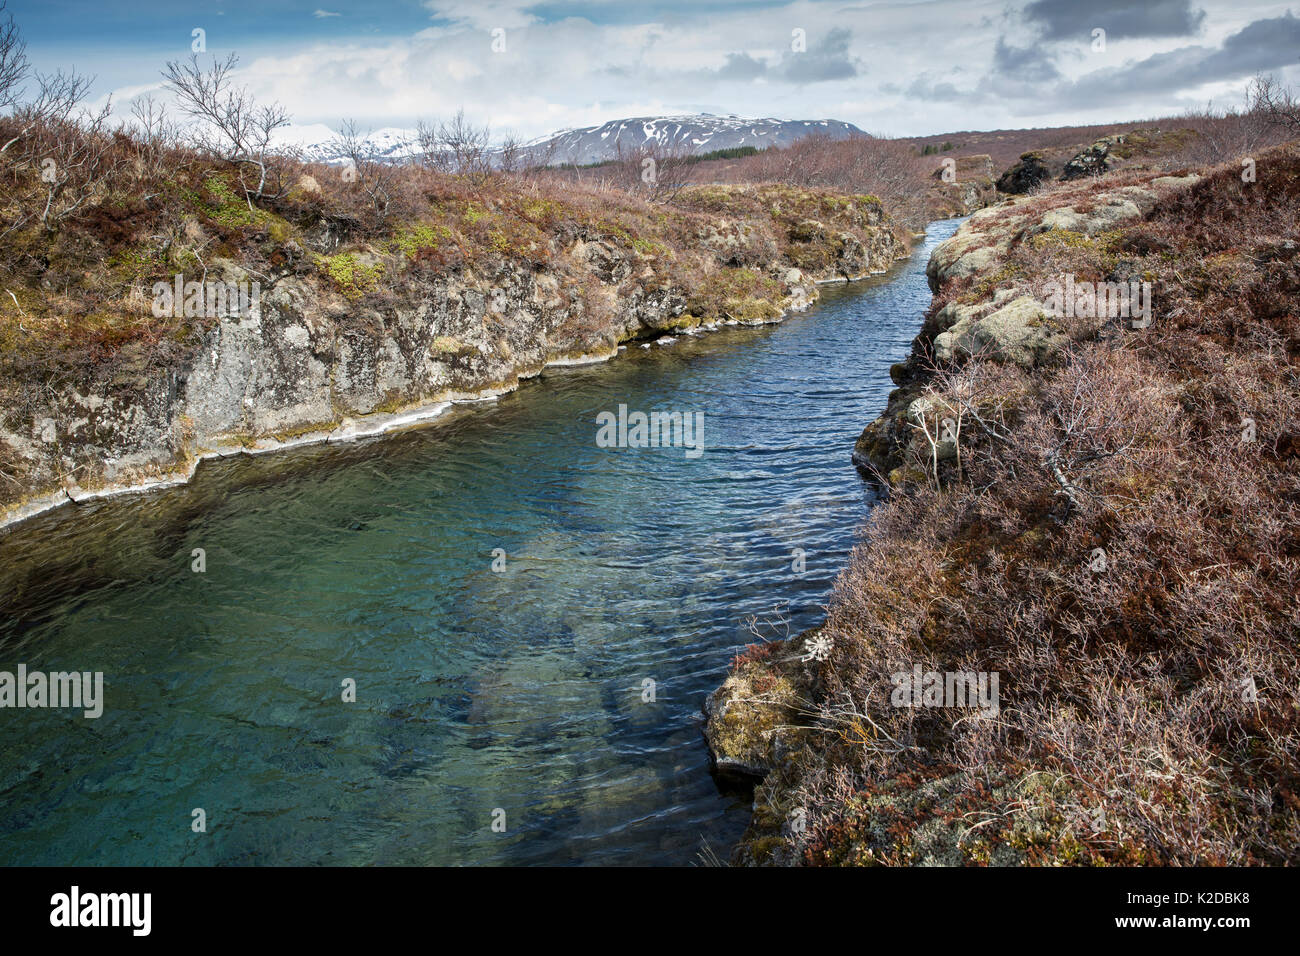 View of Davíosgja fissure located in Lake Thingvellir, a favourite among local divers but not as famous as Silfra, Thingvellir National Park, Iceland. - Stock Image